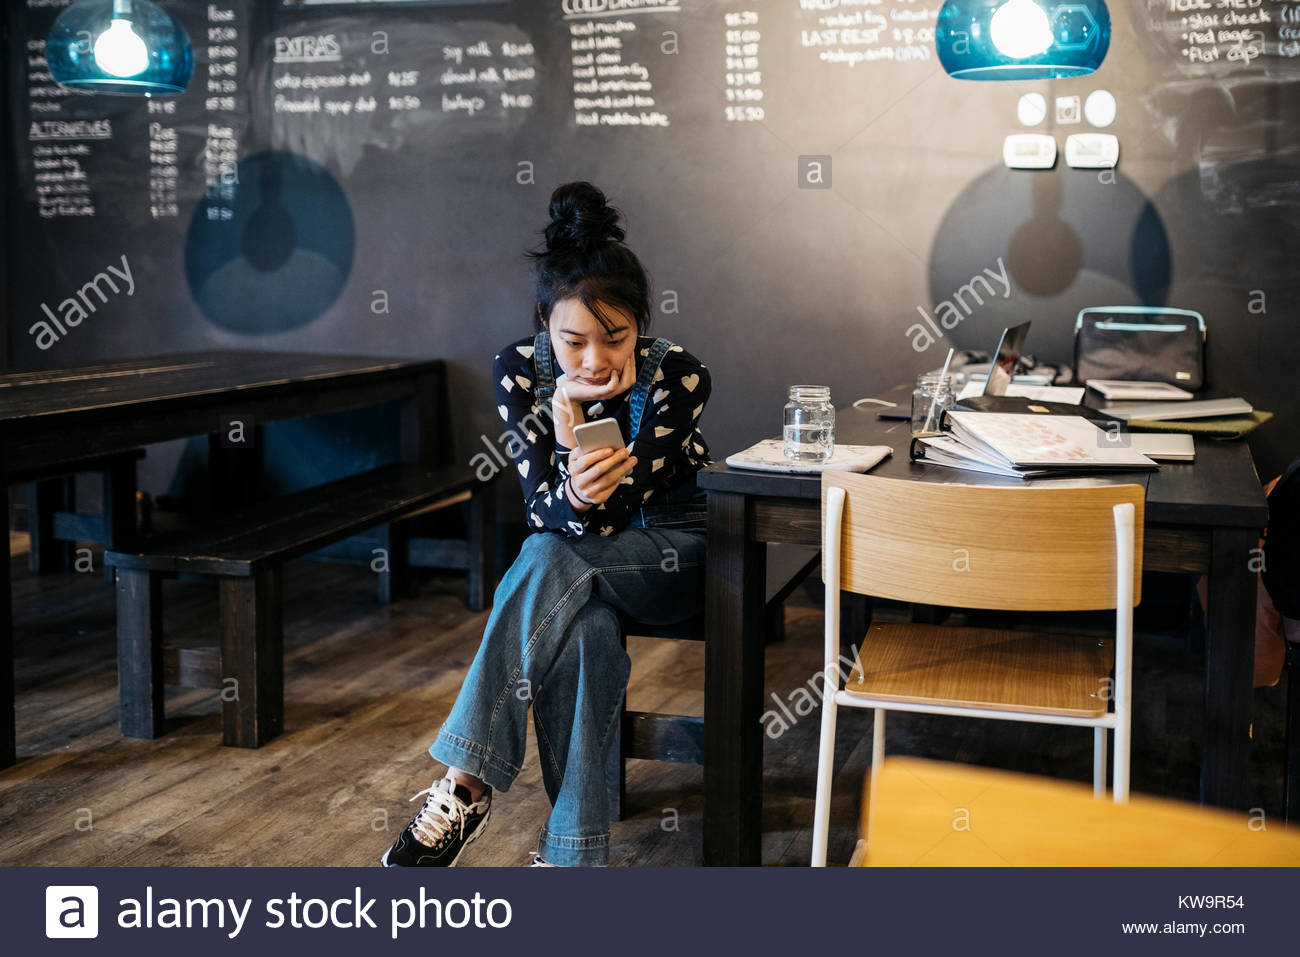 Asiatische tween Girl texting mit Smart Phone im Cafe Tabelle Stockbild